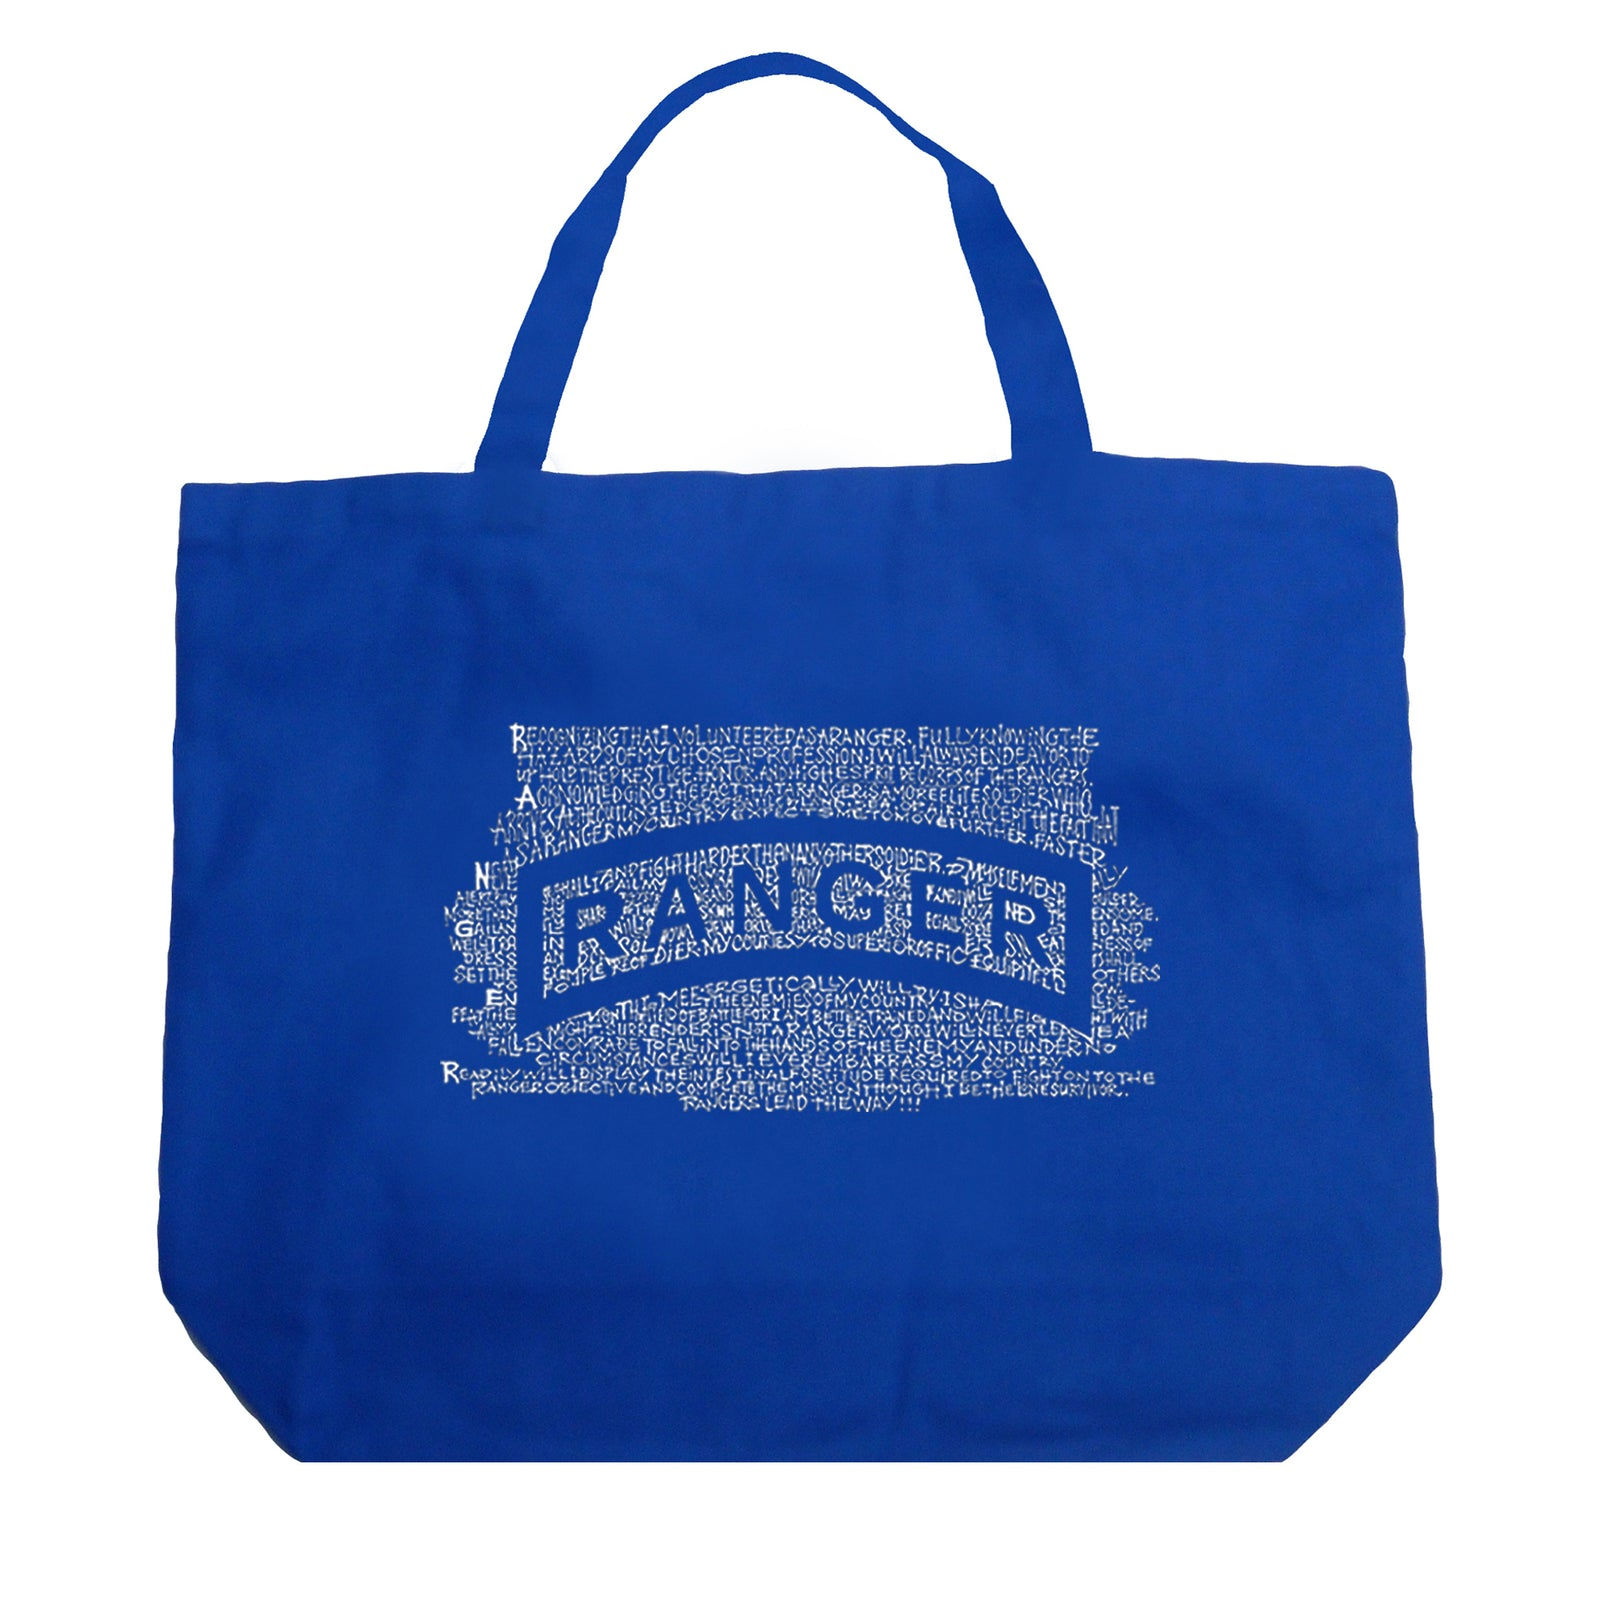 Large Tote Bag - The US Ranger Creed